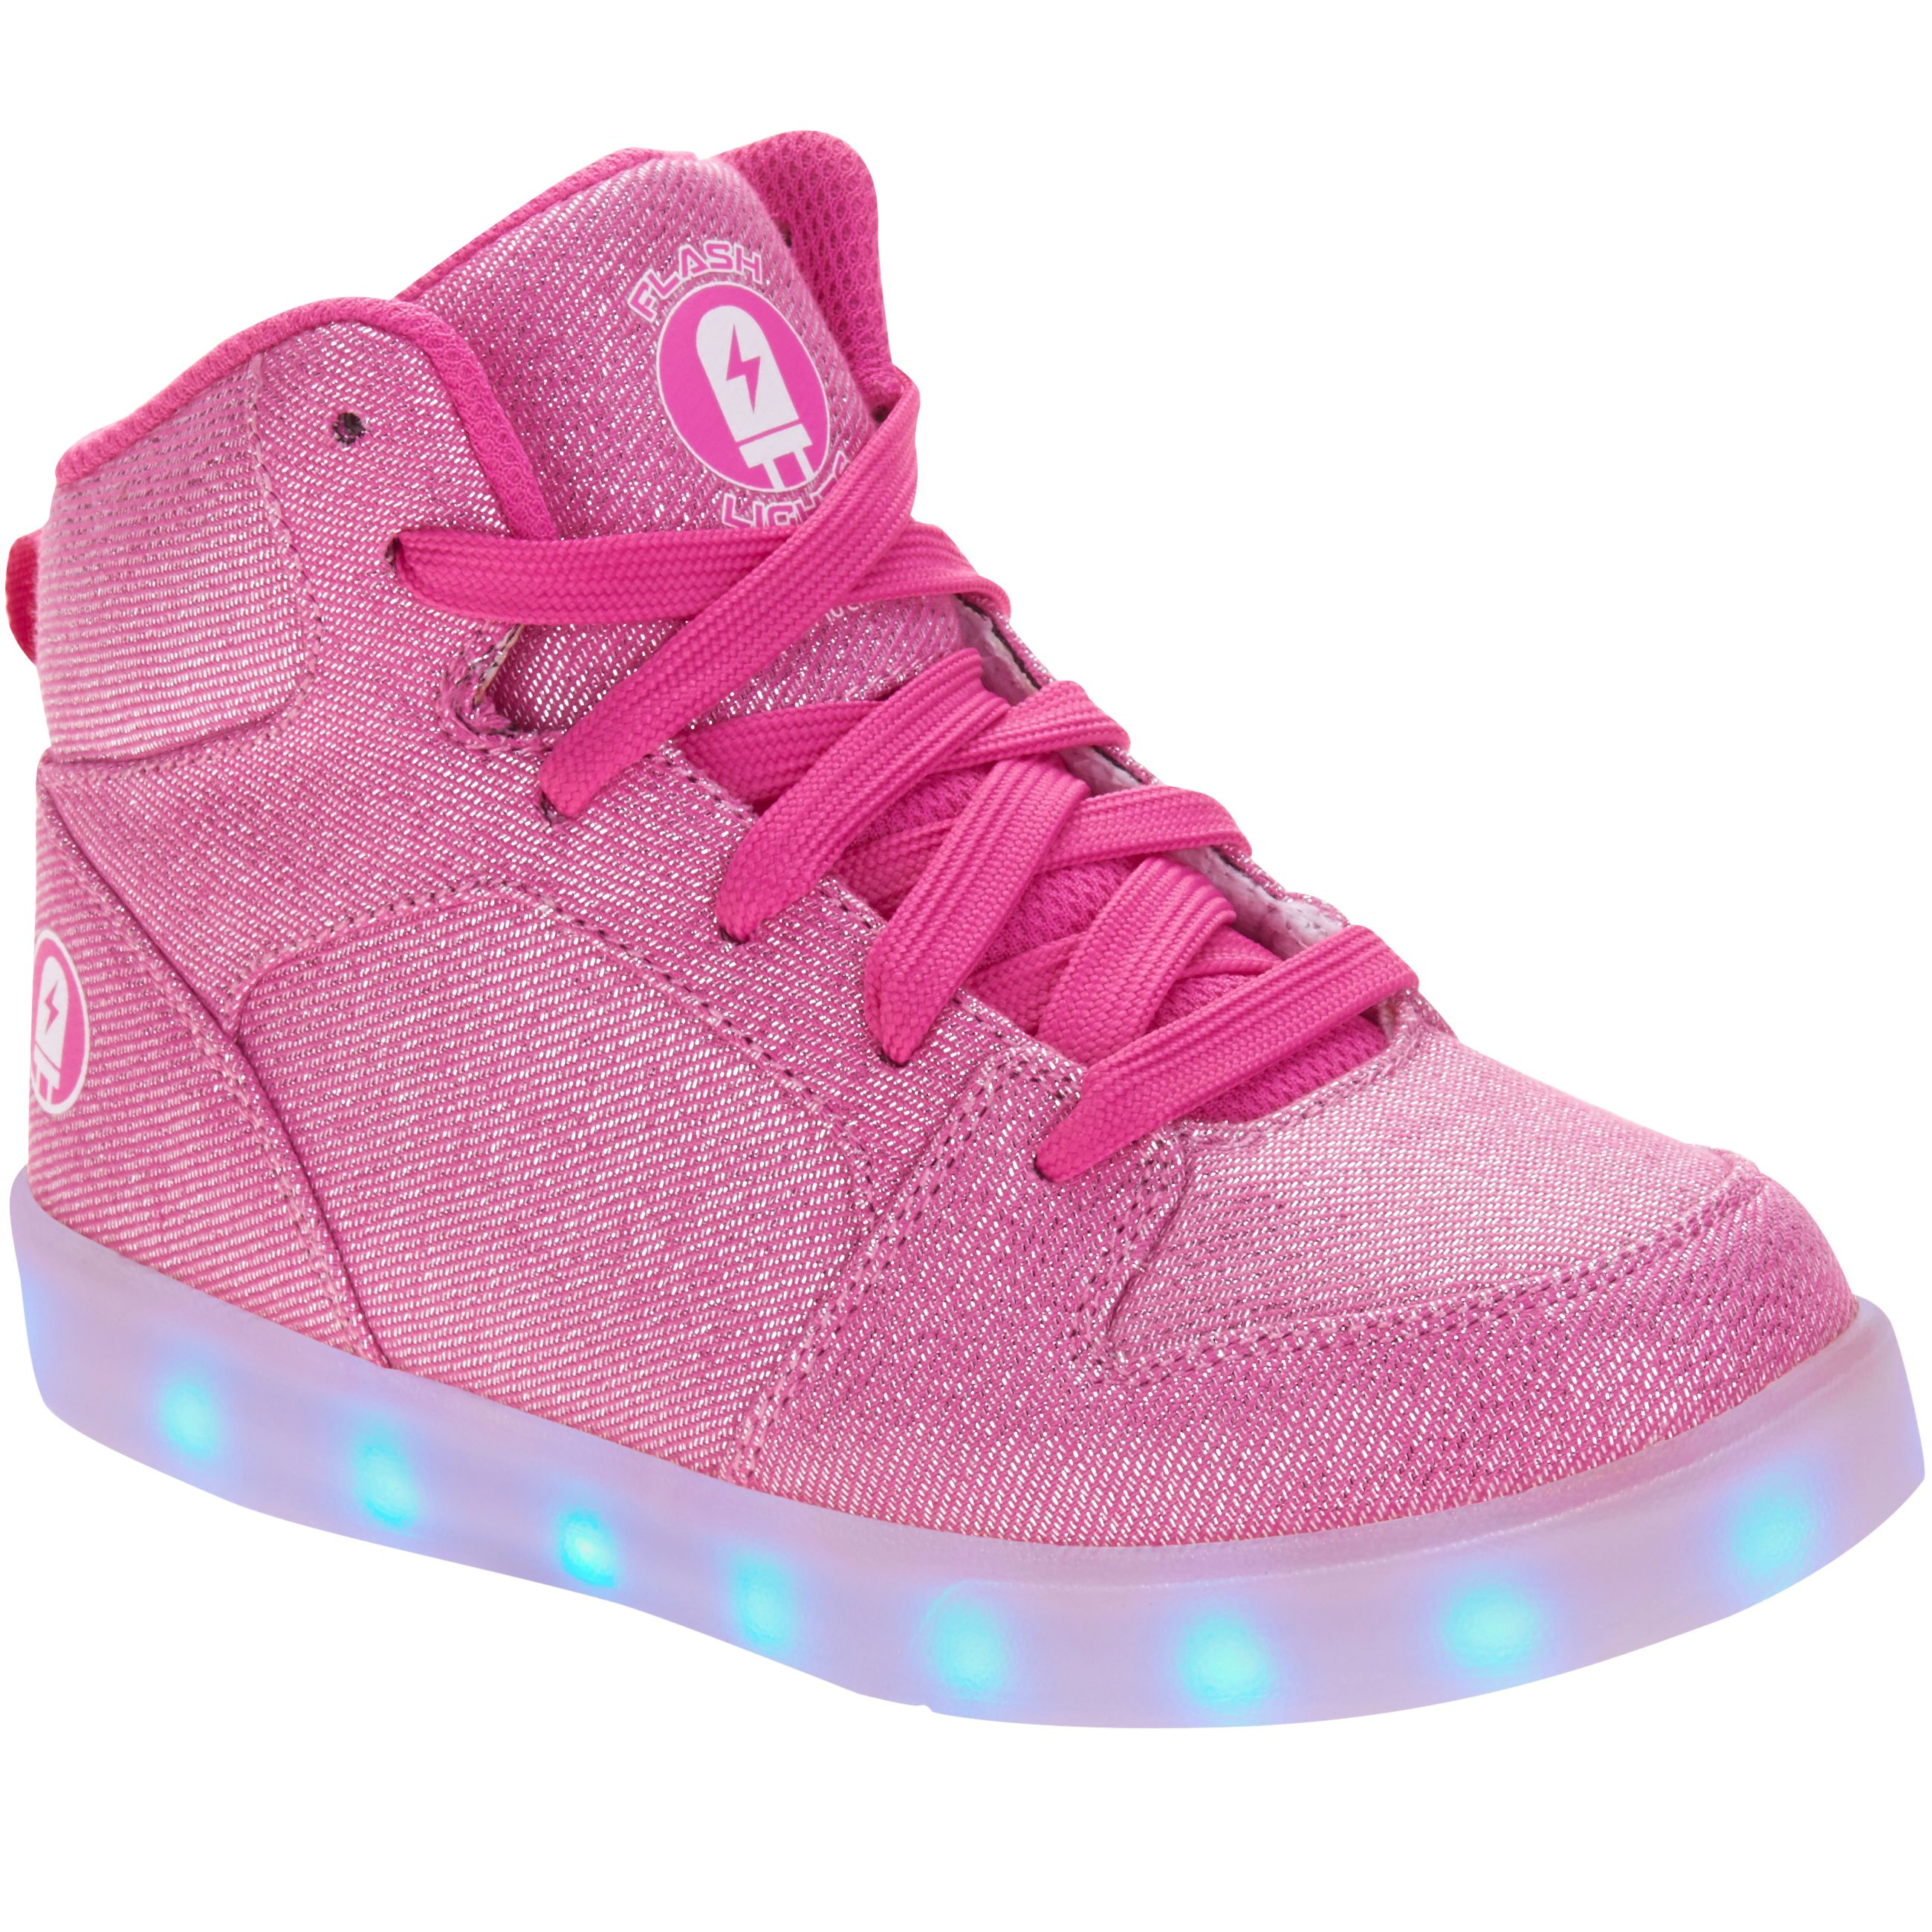 Flash Lights Brand Shoes